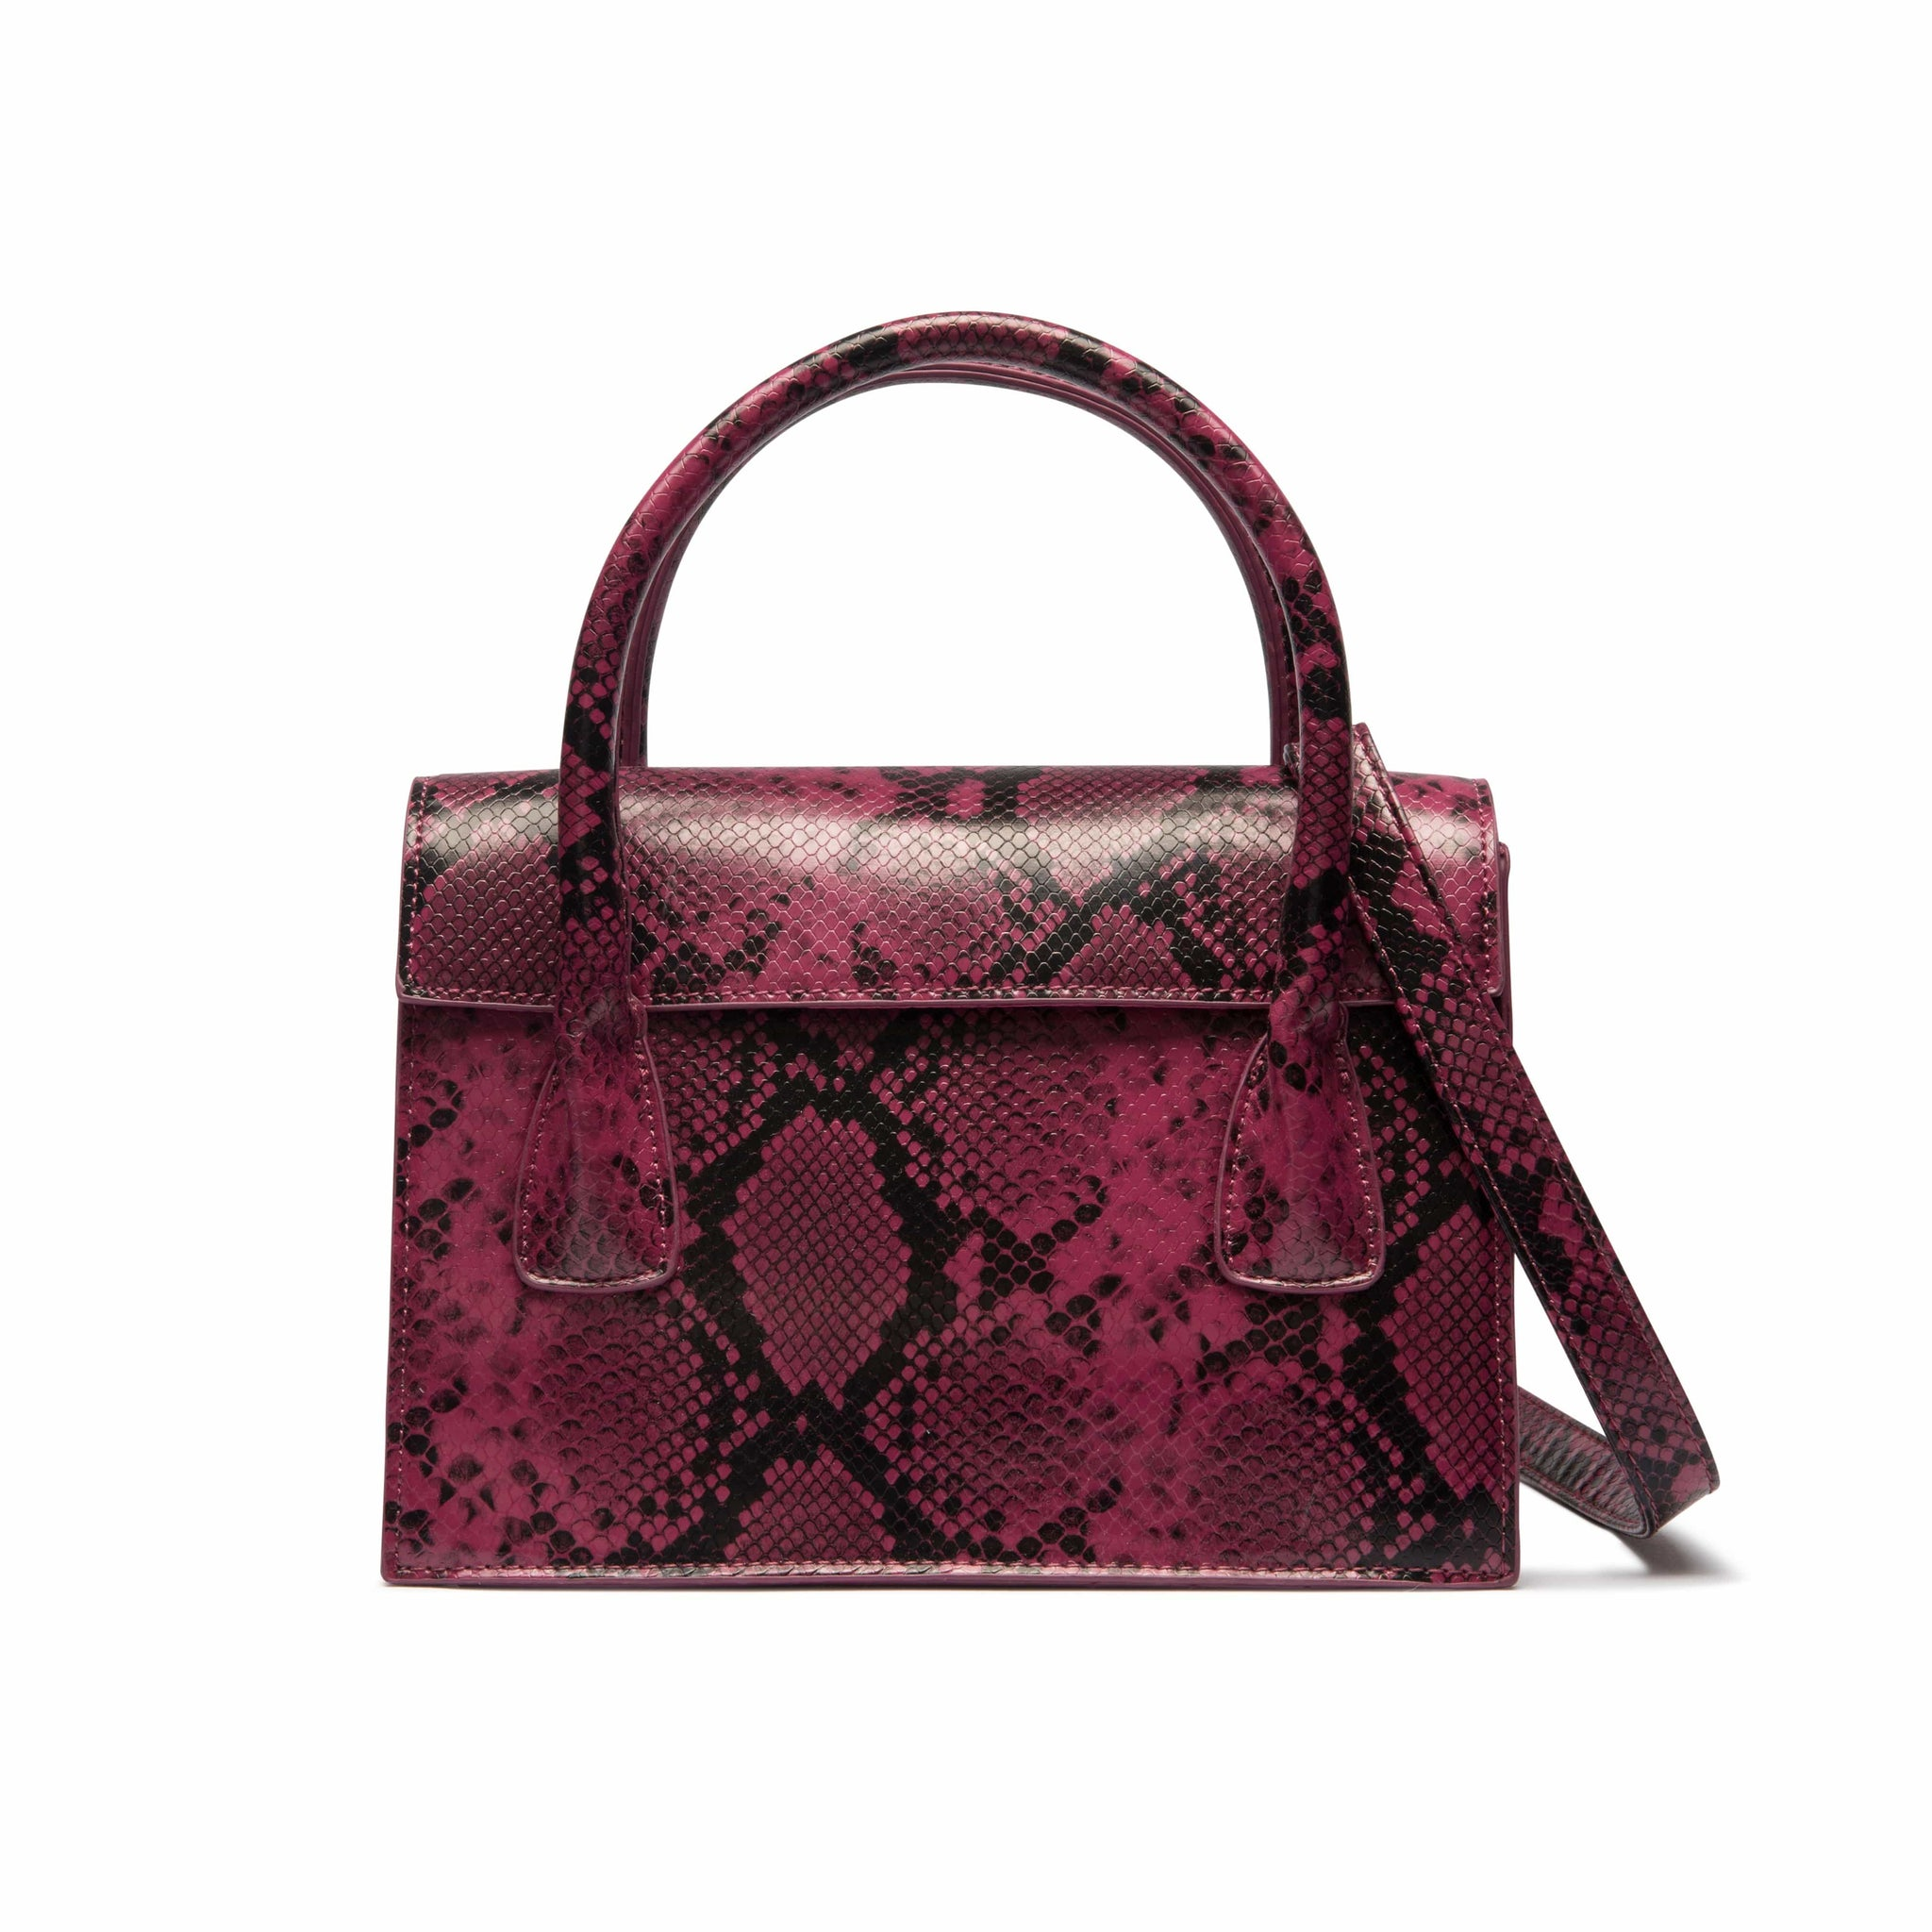 Arabella Crossbody Bag (Magenta/ Black Snakeskin)